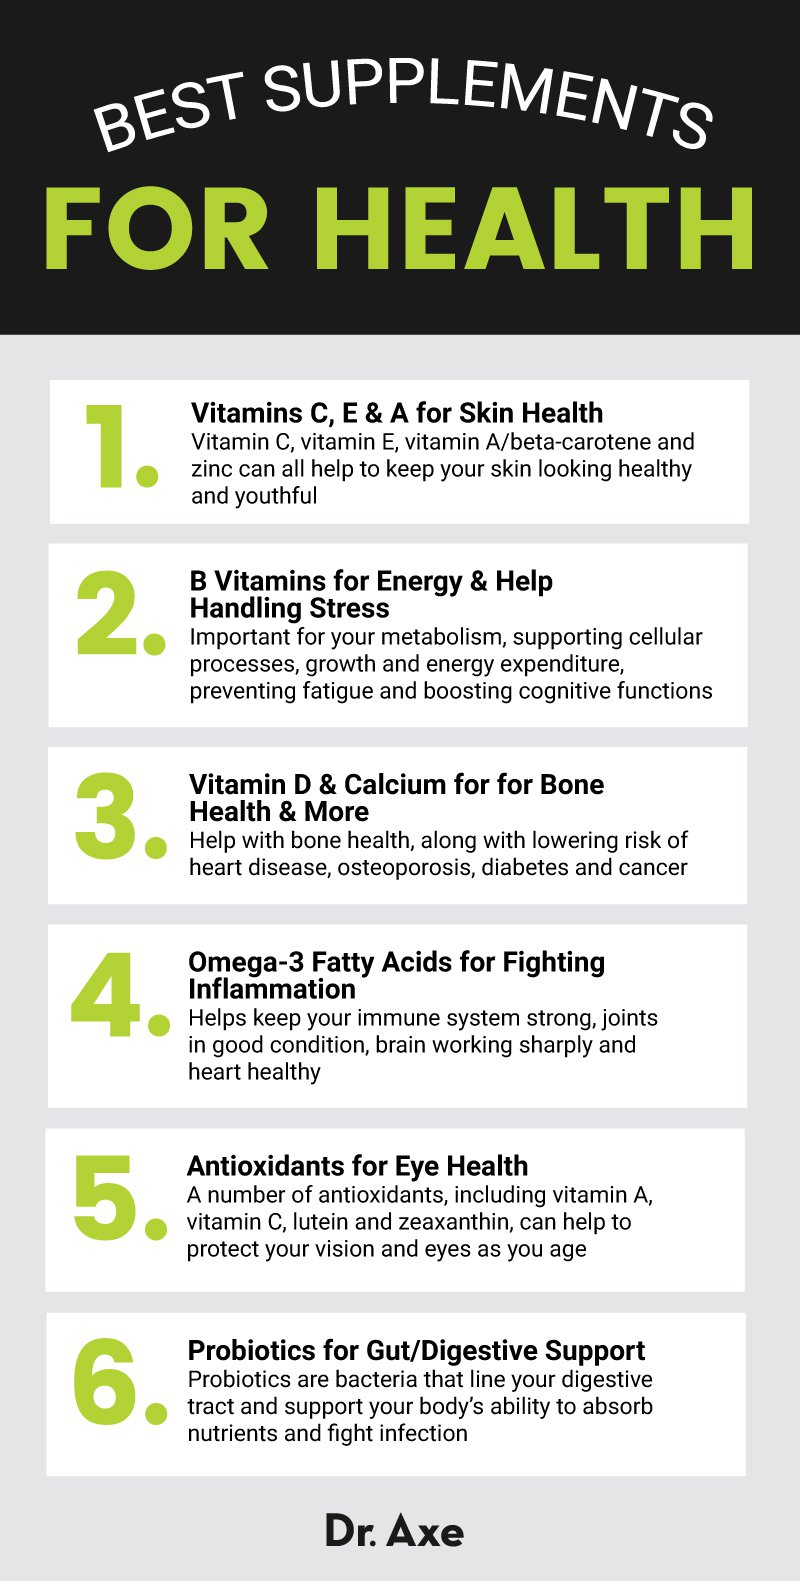 Best Supplements for Health